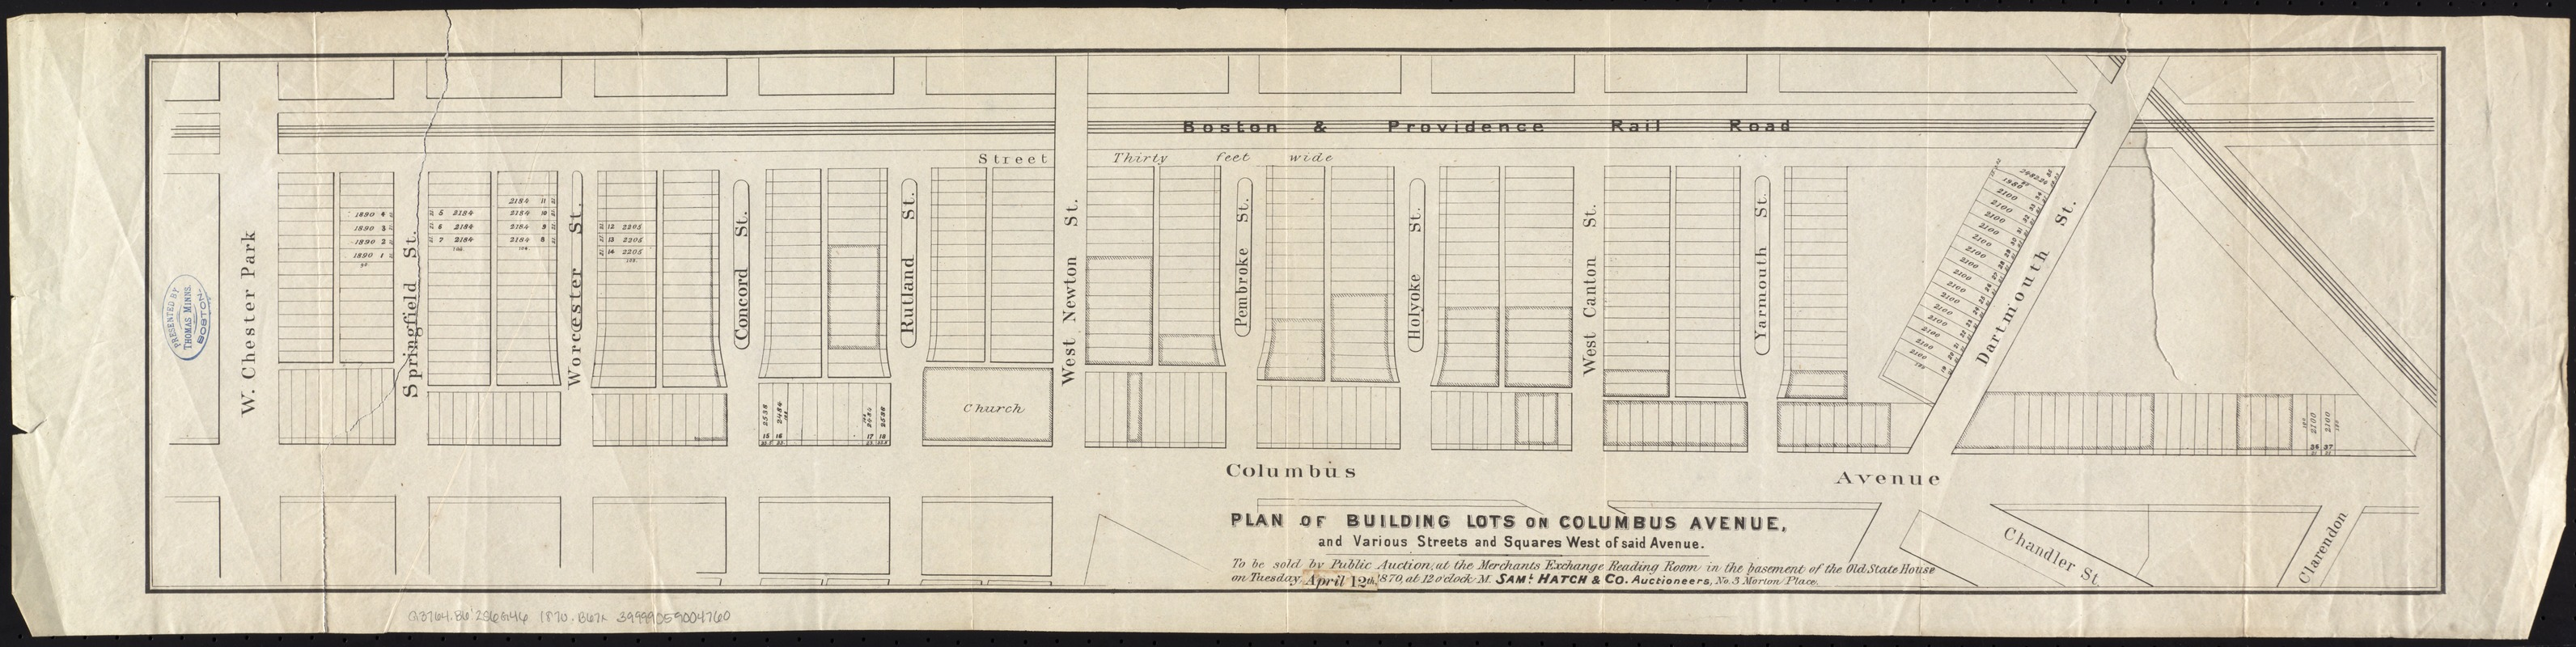 Plan of building lots on Columbus Avenue, and various streets and squares west of said avenue